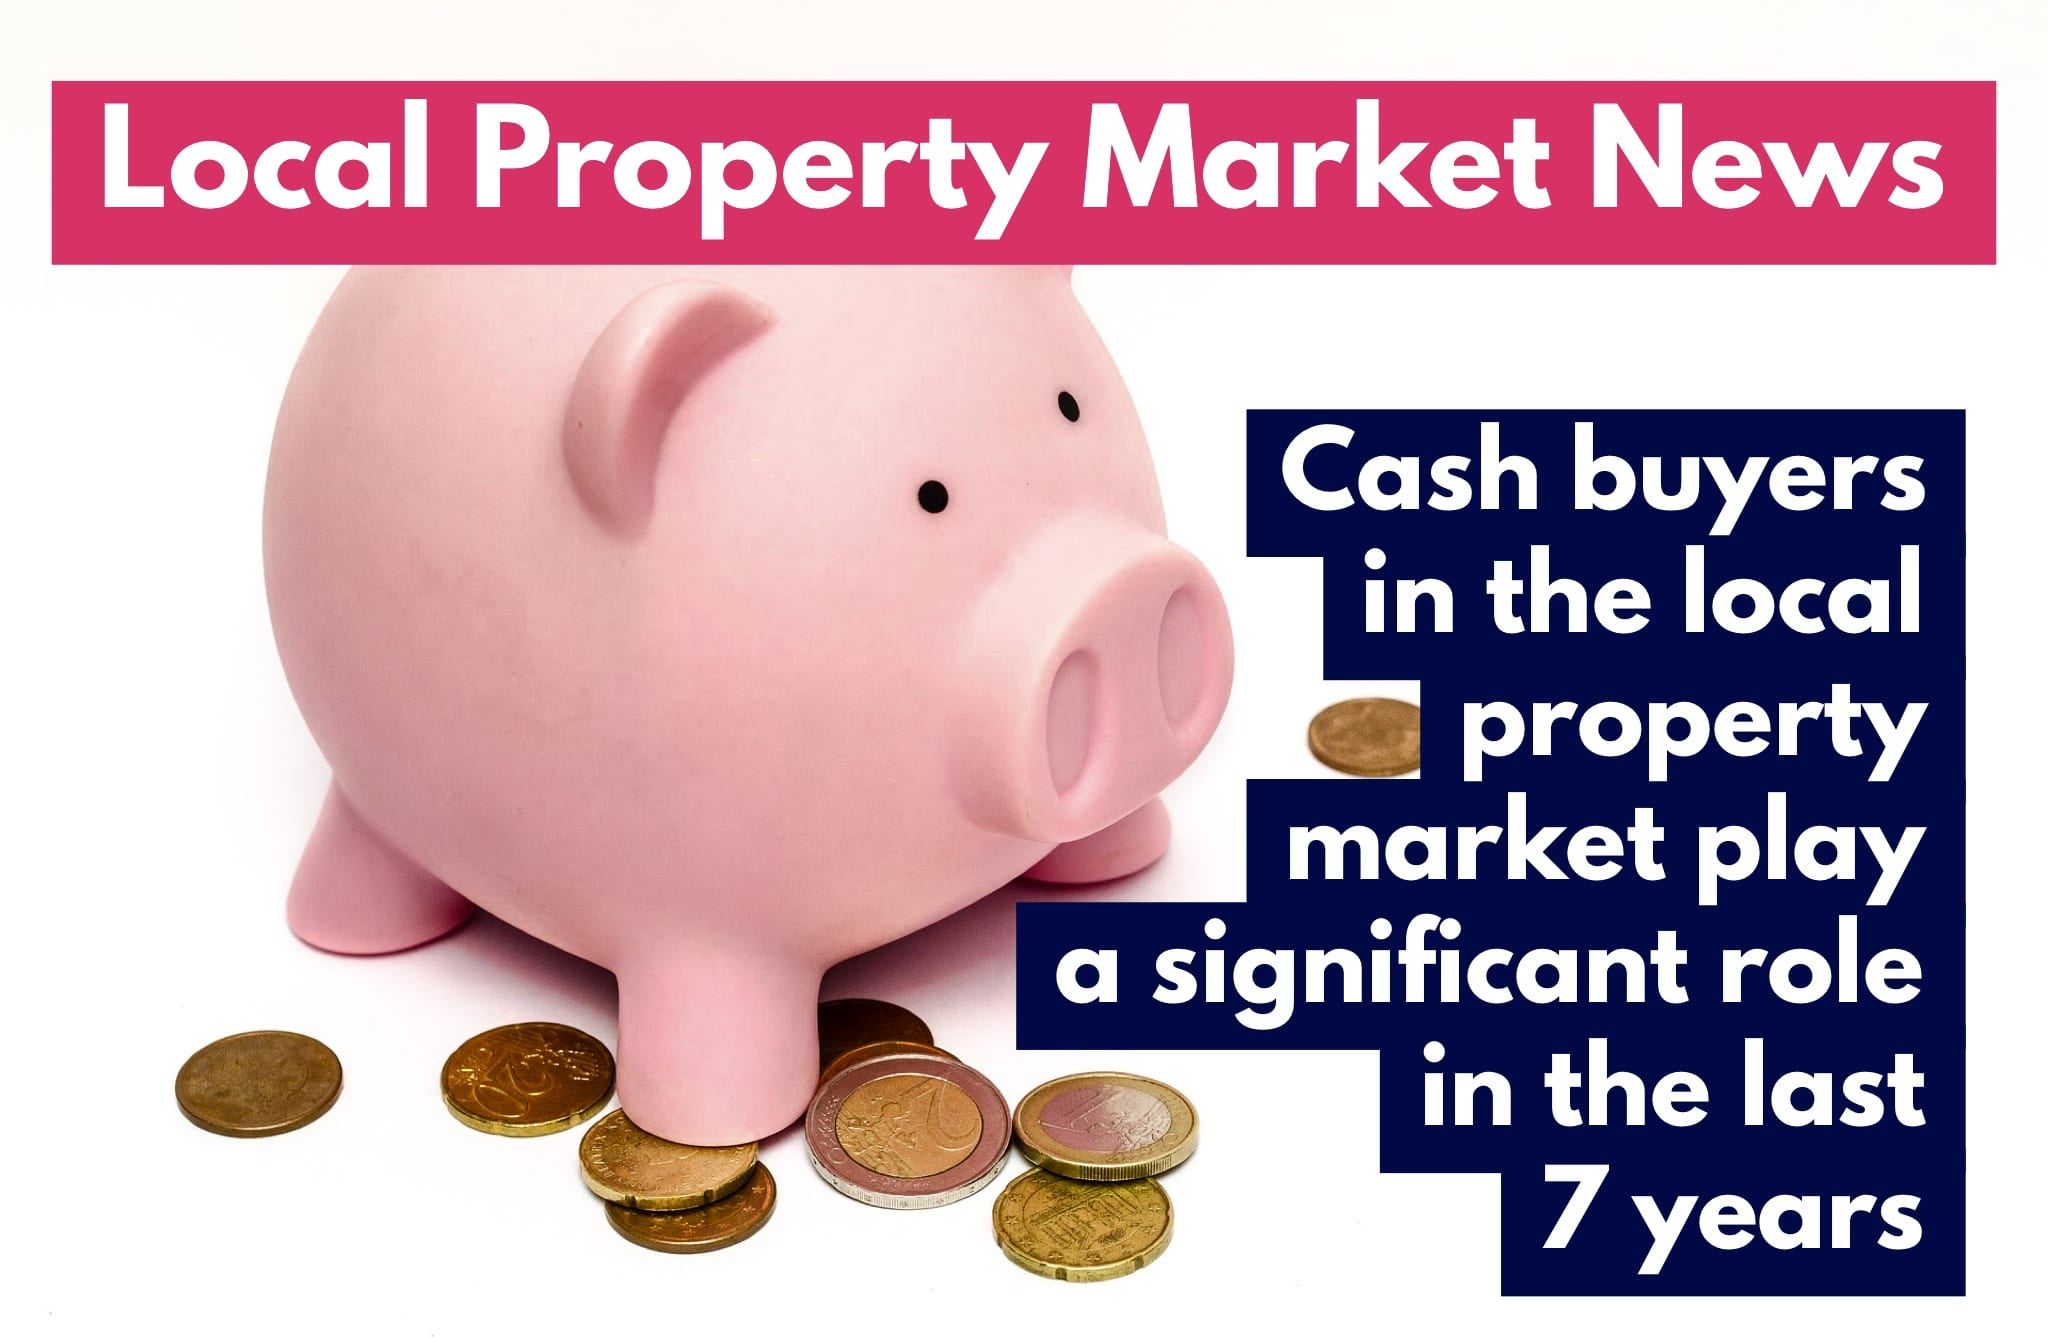 43.7% of All Canterbury Properties were Bought Without a Mortgage in the Last 7 Years